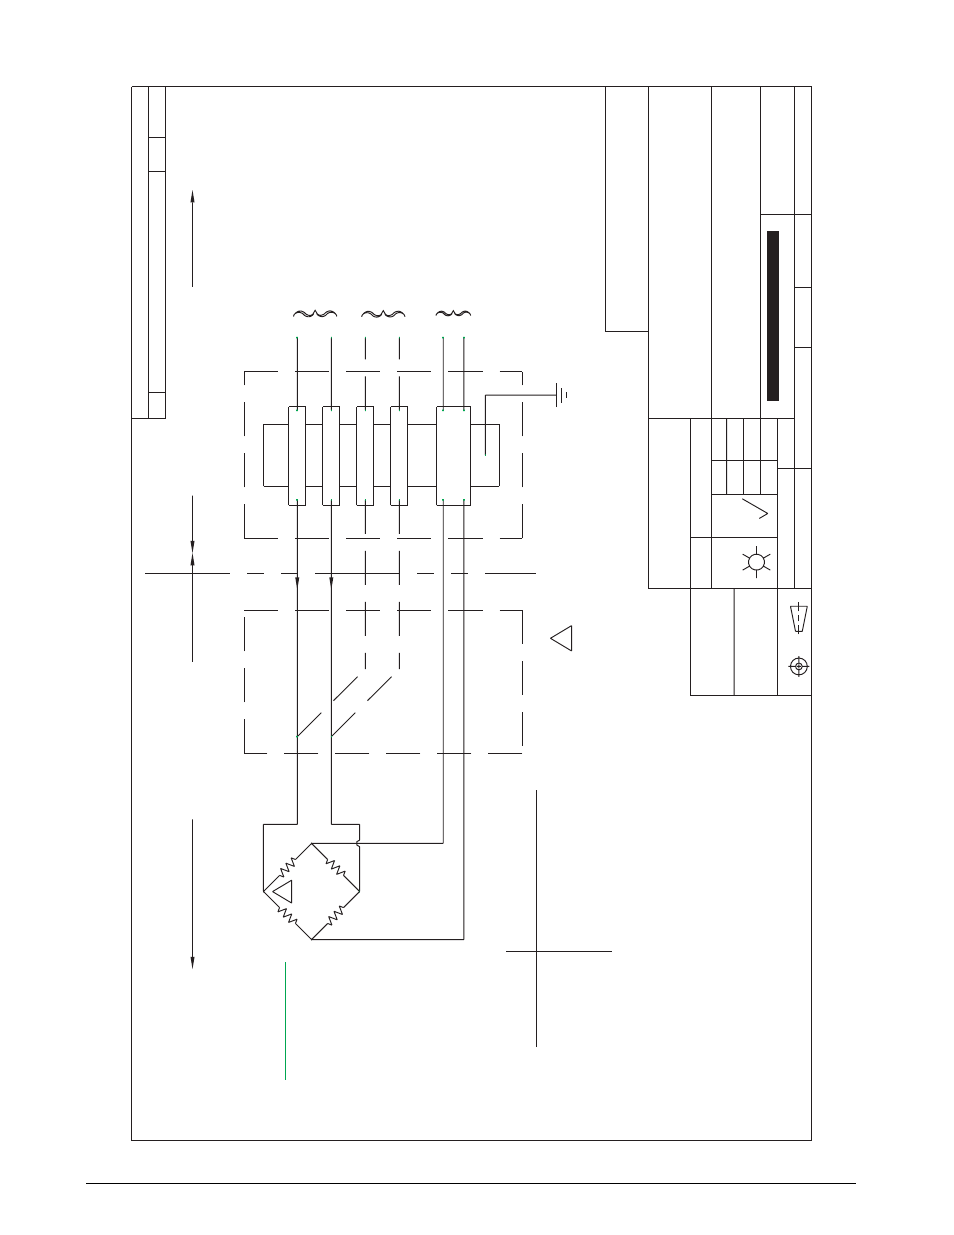 Wiring Diagram Load Cells In Hazardous